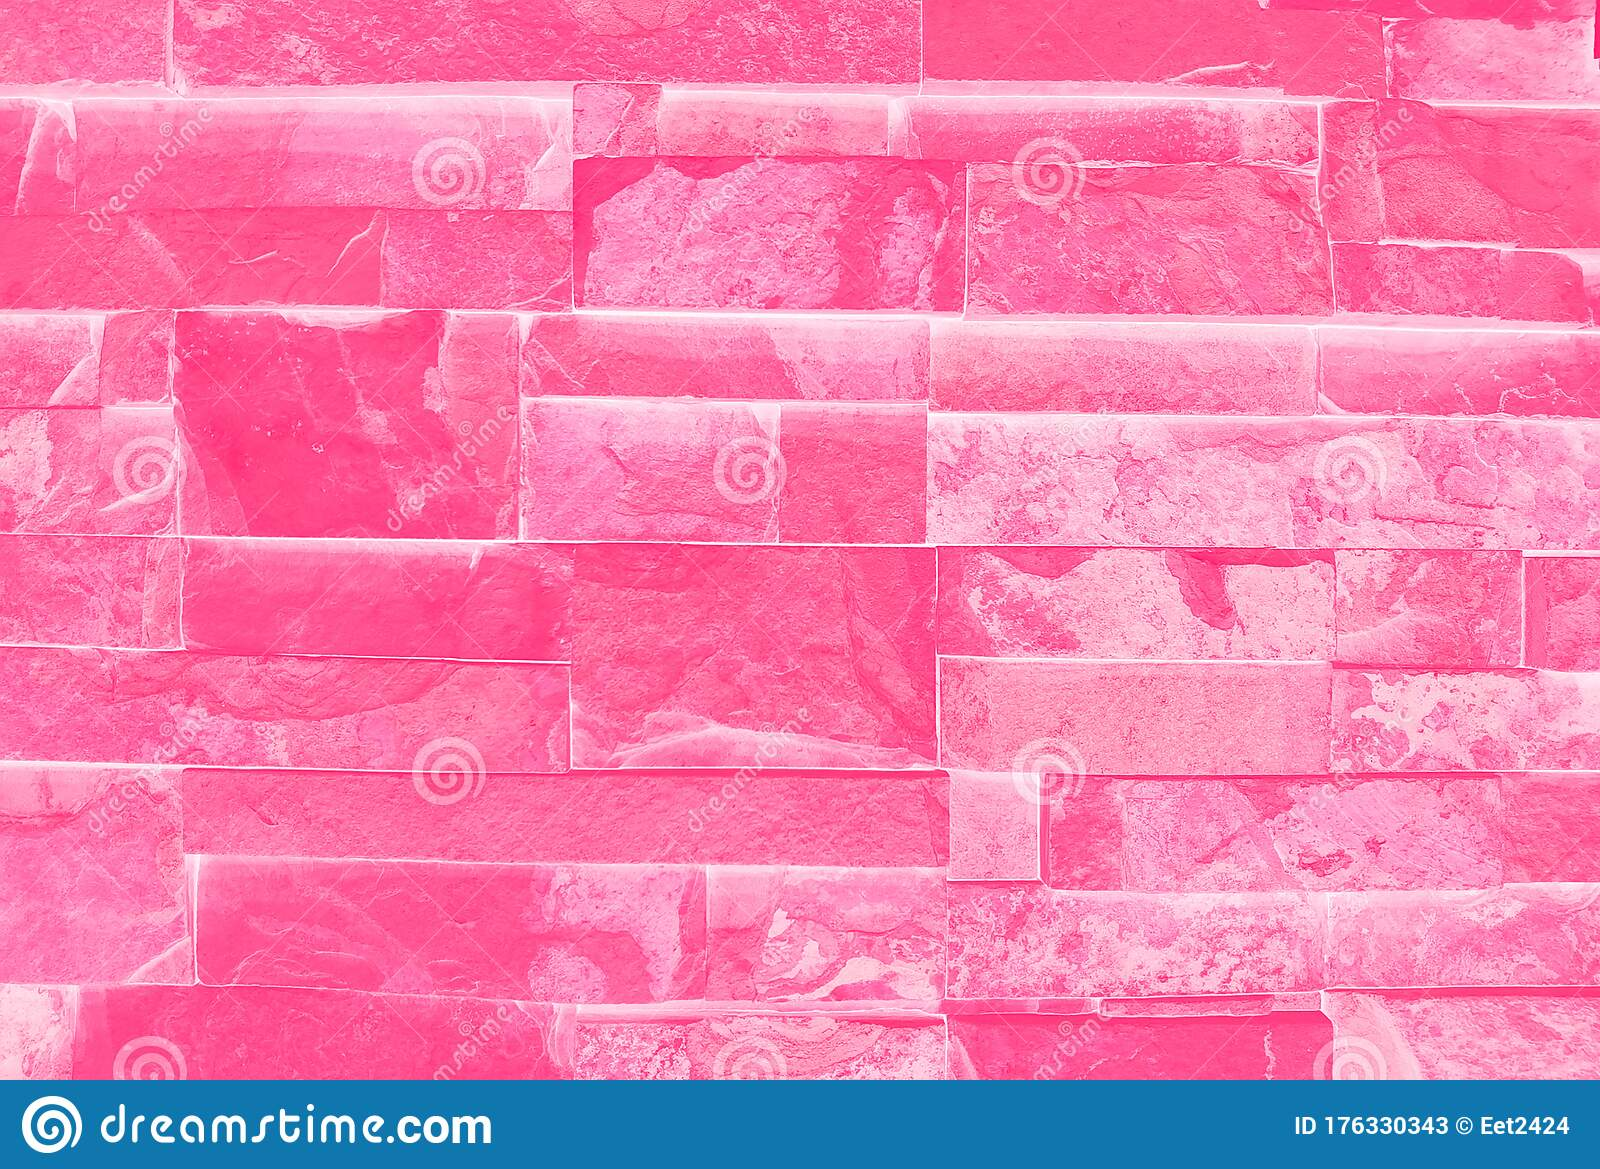 Beautiful Closeup Textures Abstract Color Gray White Tiles Granite And Pink Marble Pattern Wall On Pink Background And Wood Tile Stock Image Image Of Decoration Bathroom 176330343